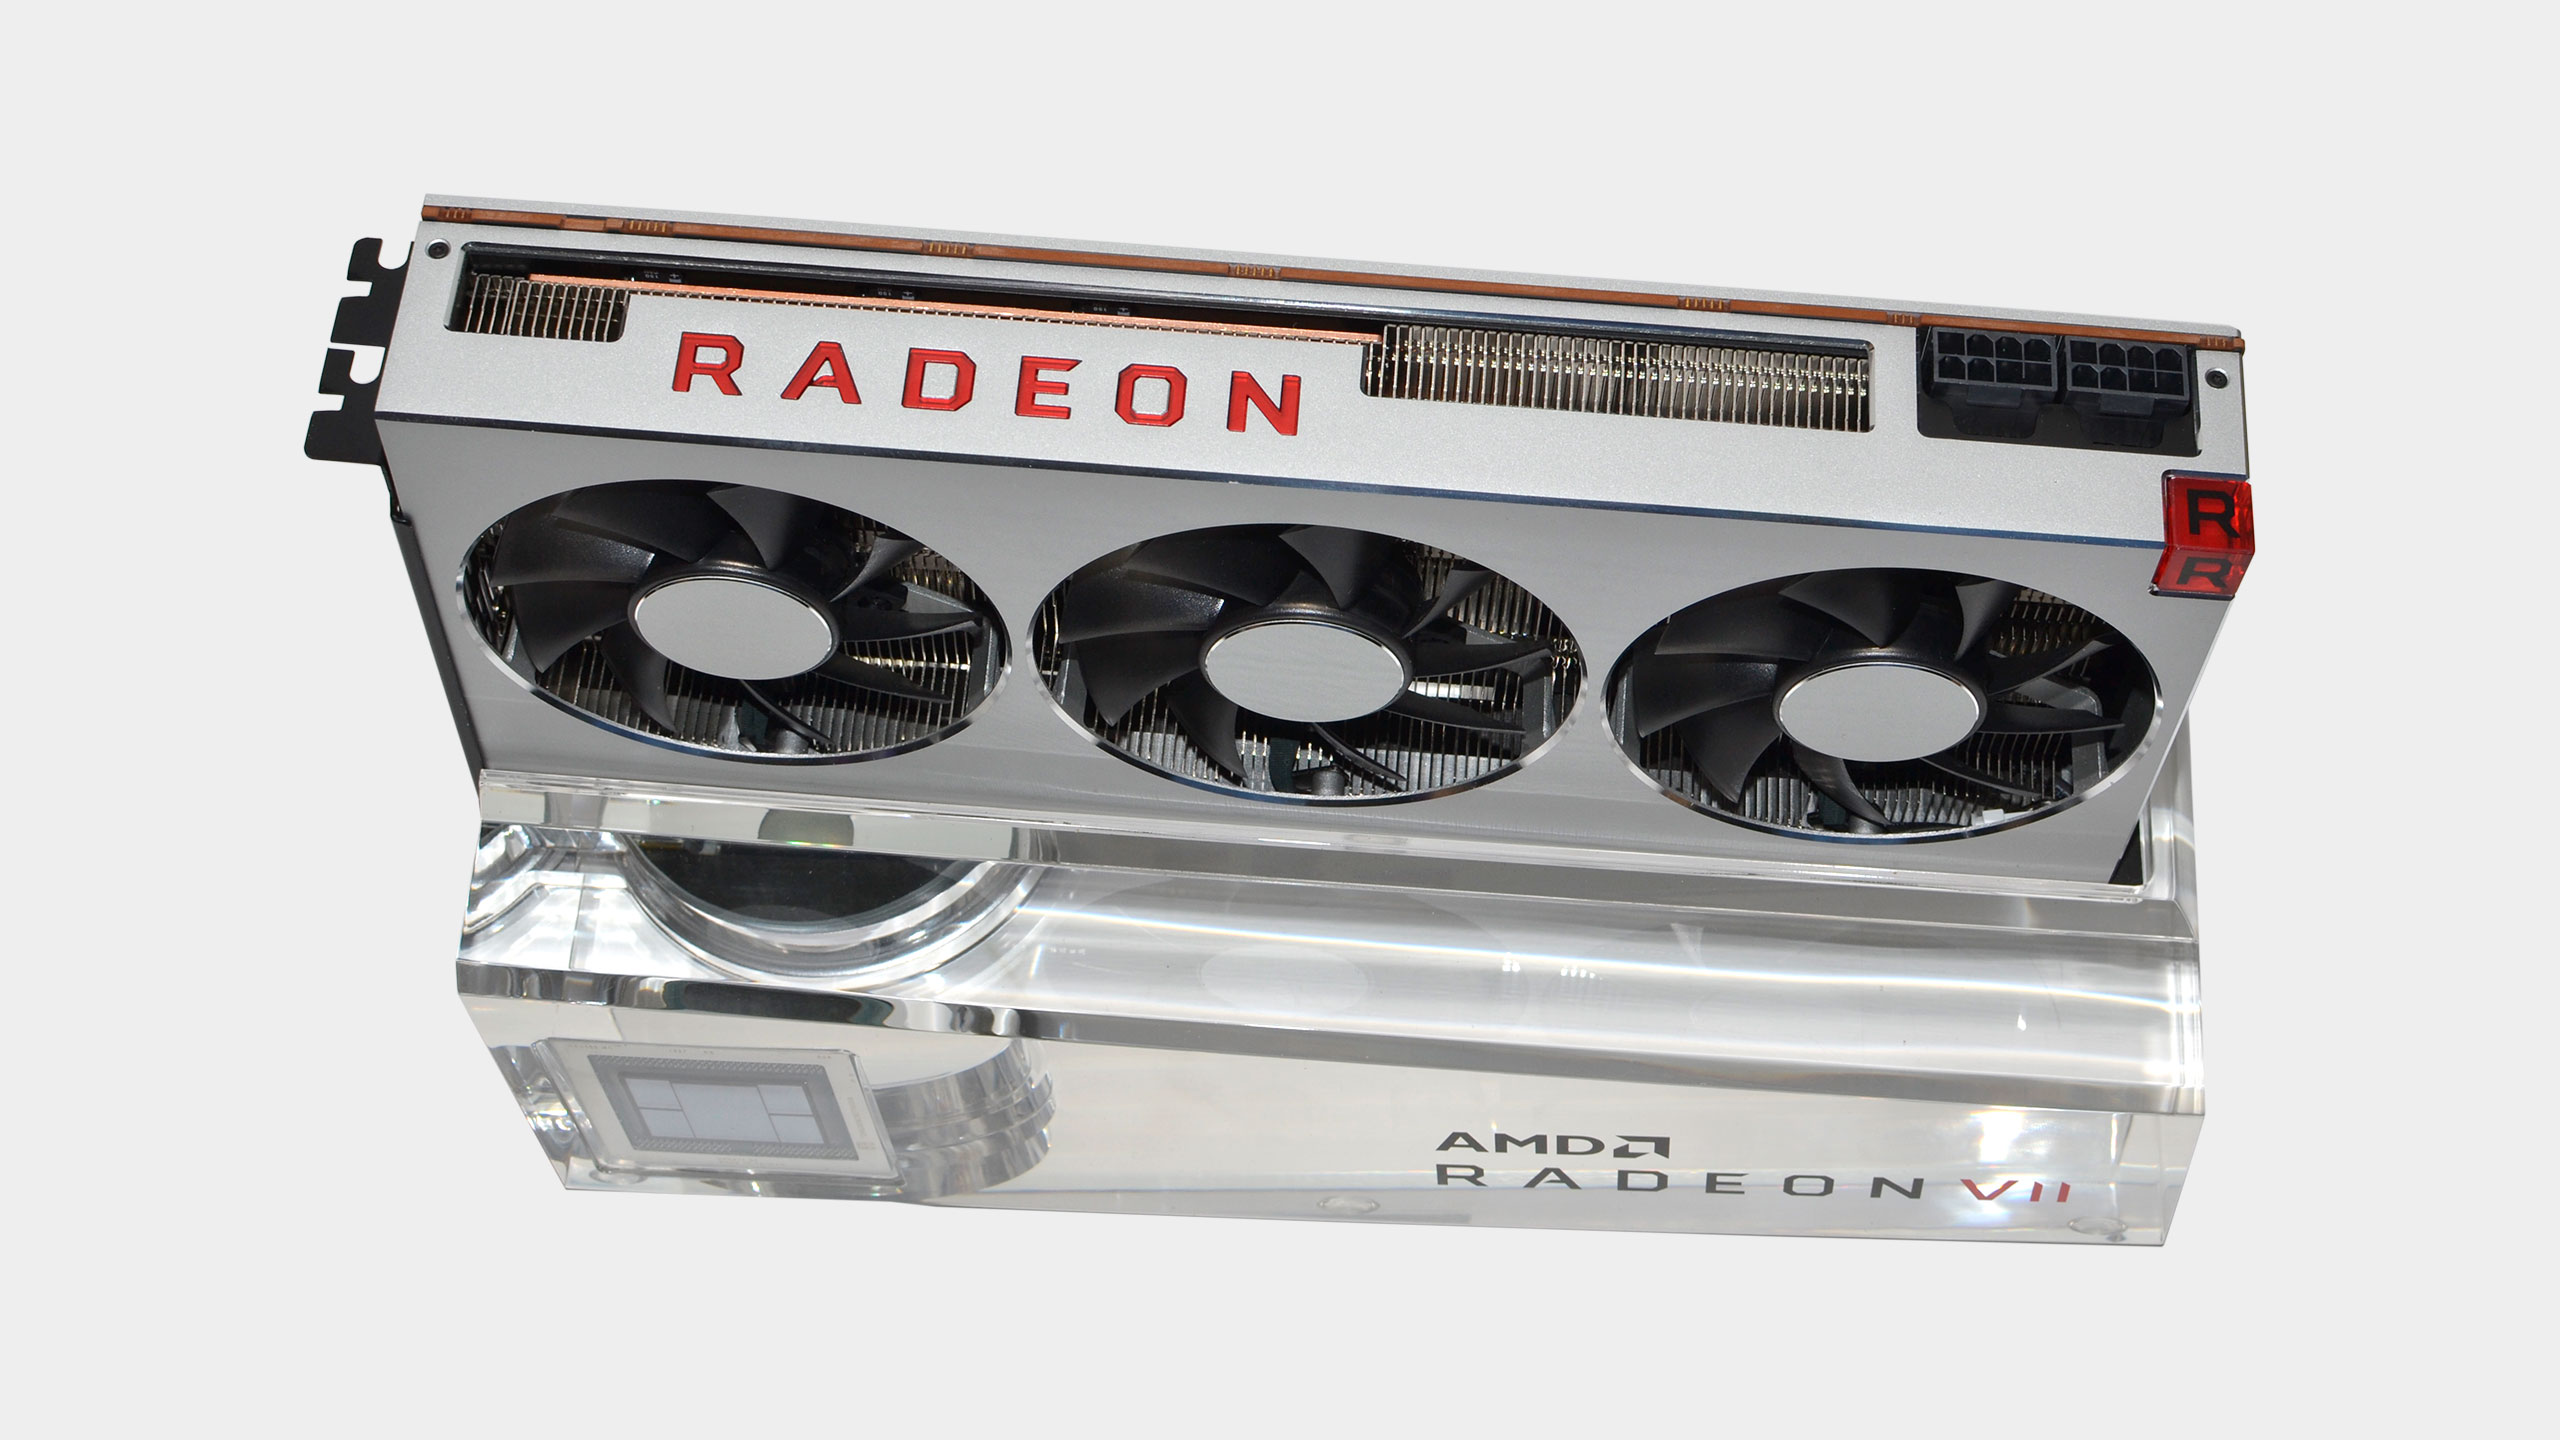 New AMD driver is supposed to boost Rage 2 performance by up